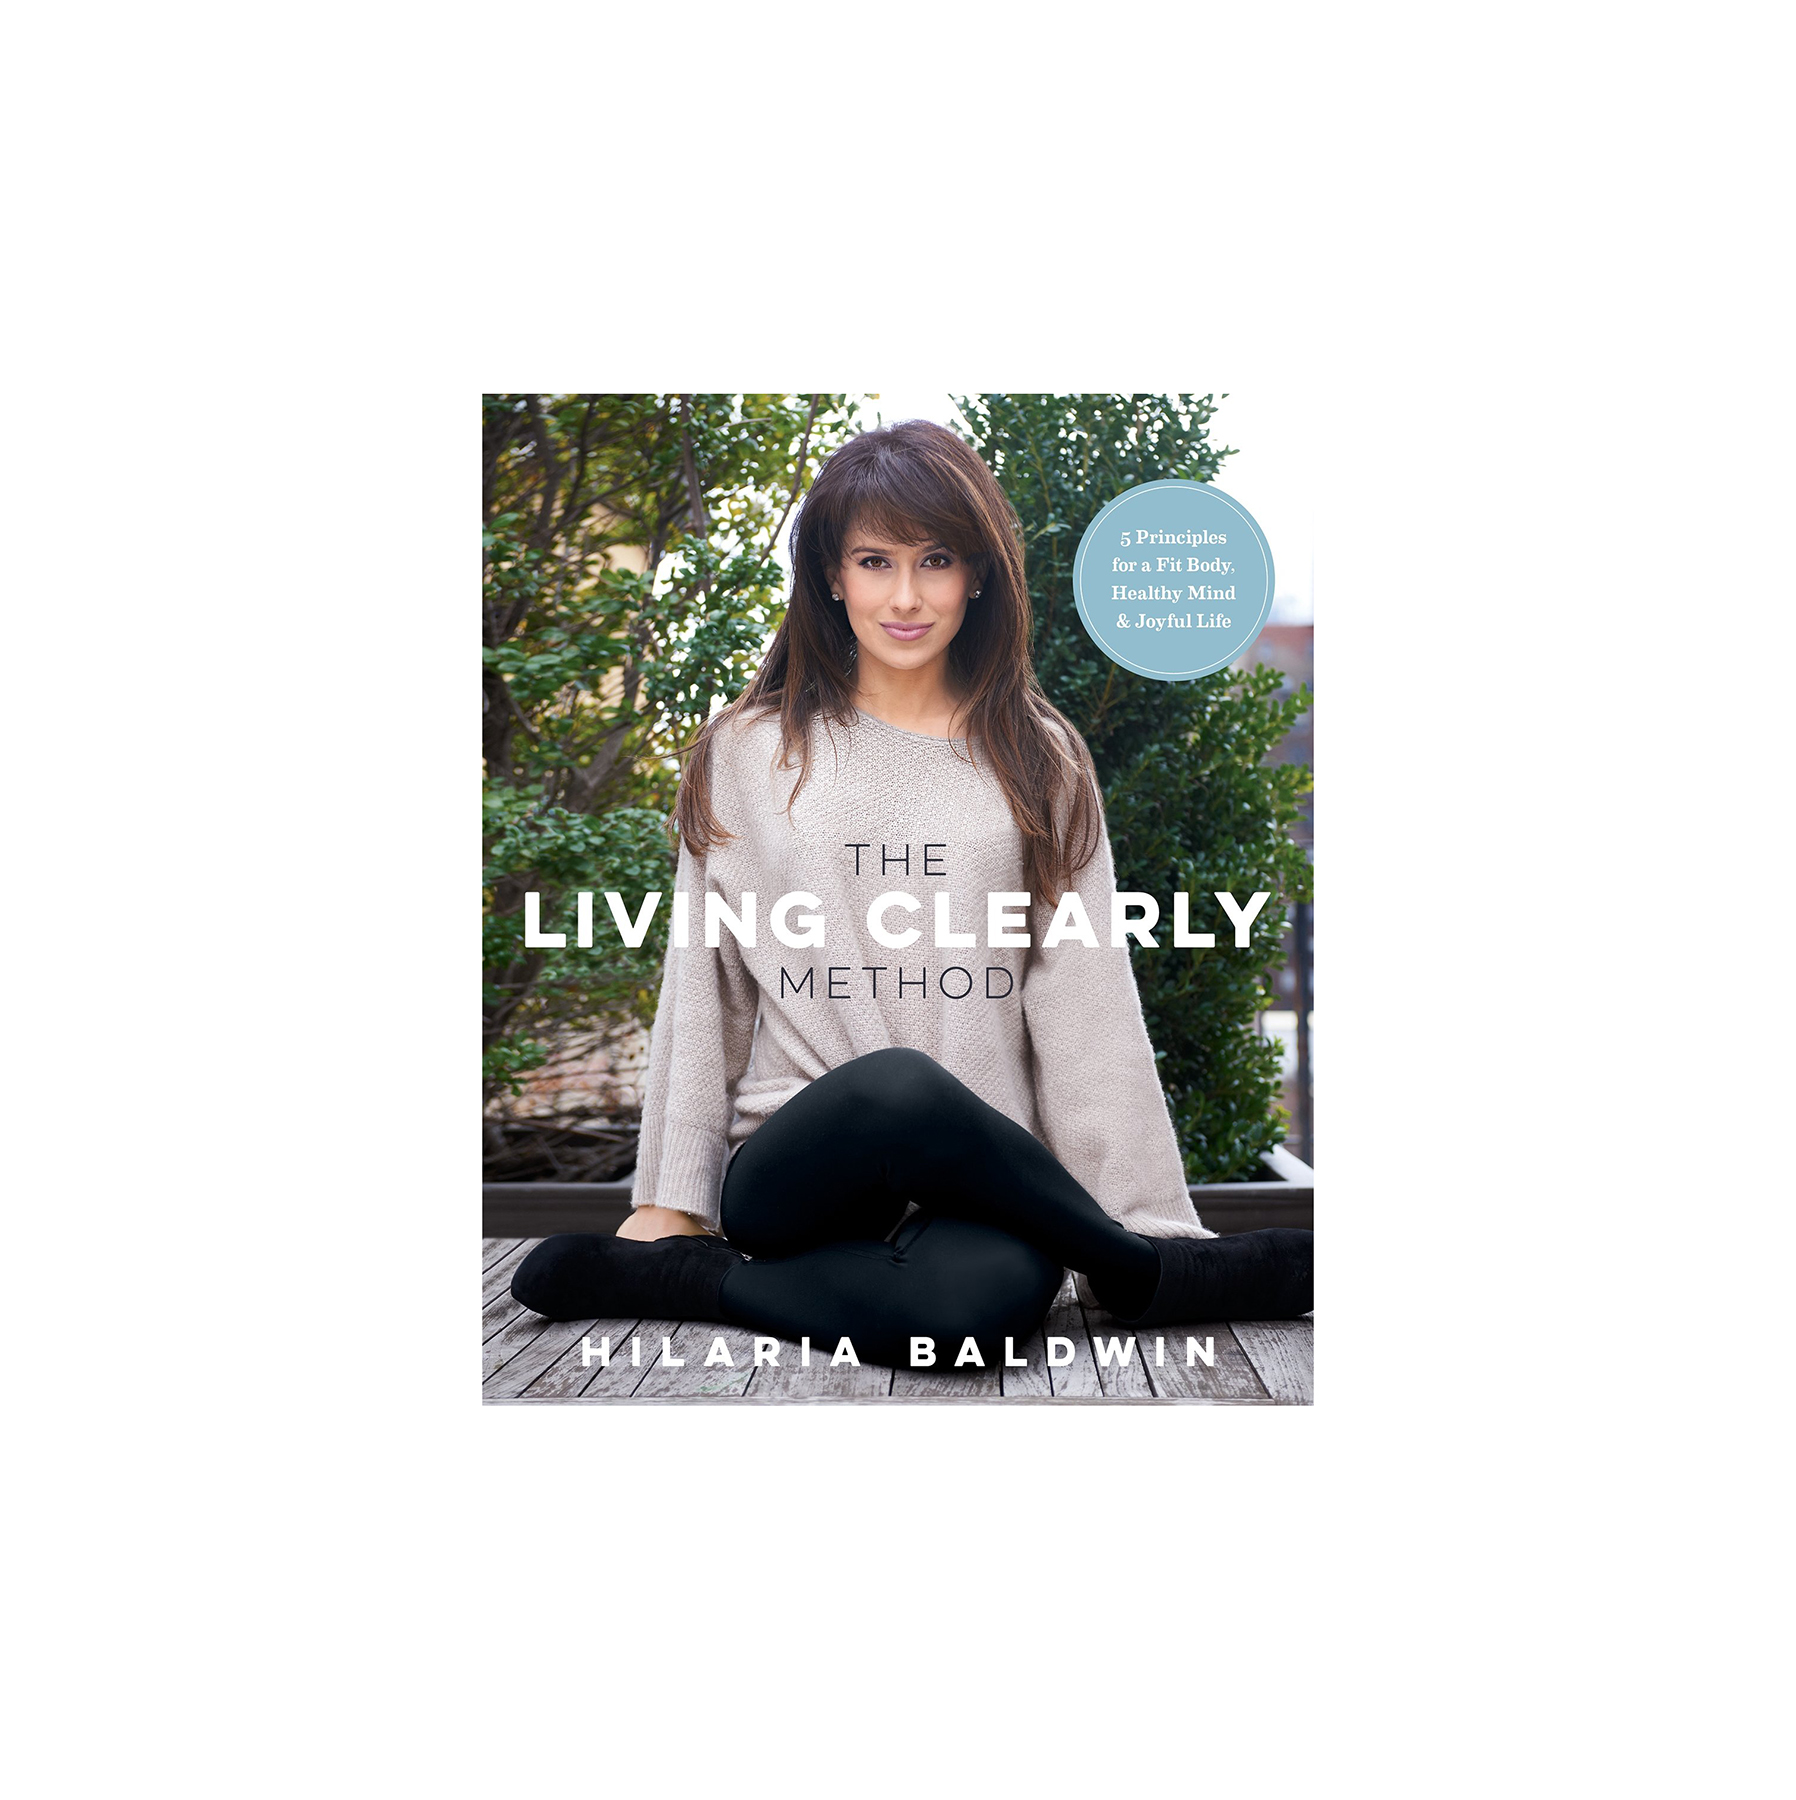 The Living Clearly Method, by Hilaria Baldwin